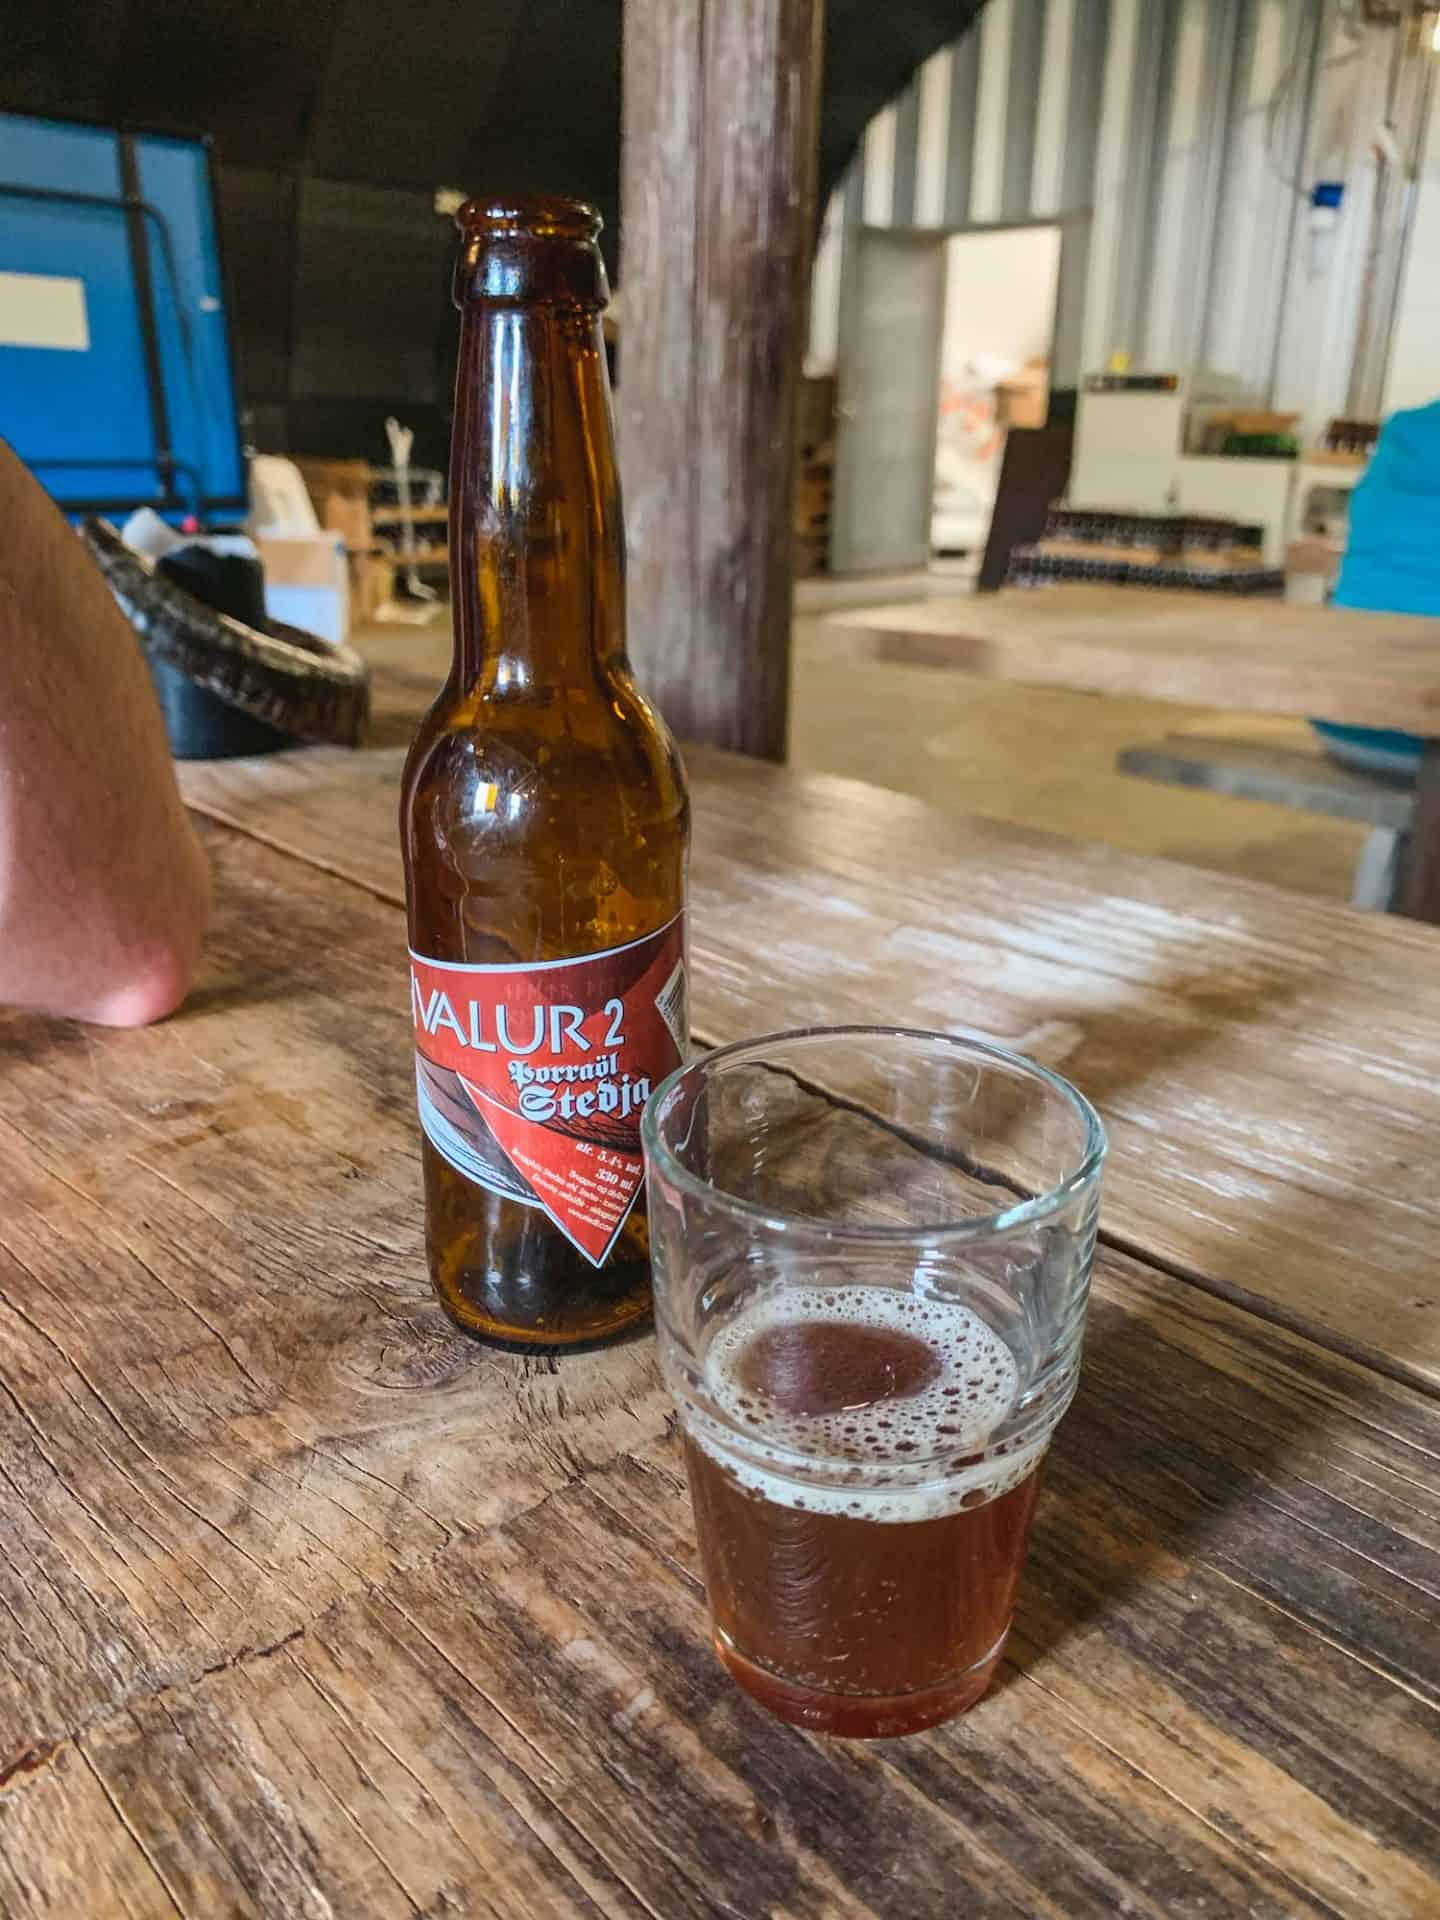 Sheep-dung smoked whale sperm beer at Steðji Brewery in Bogarnes, Iceland